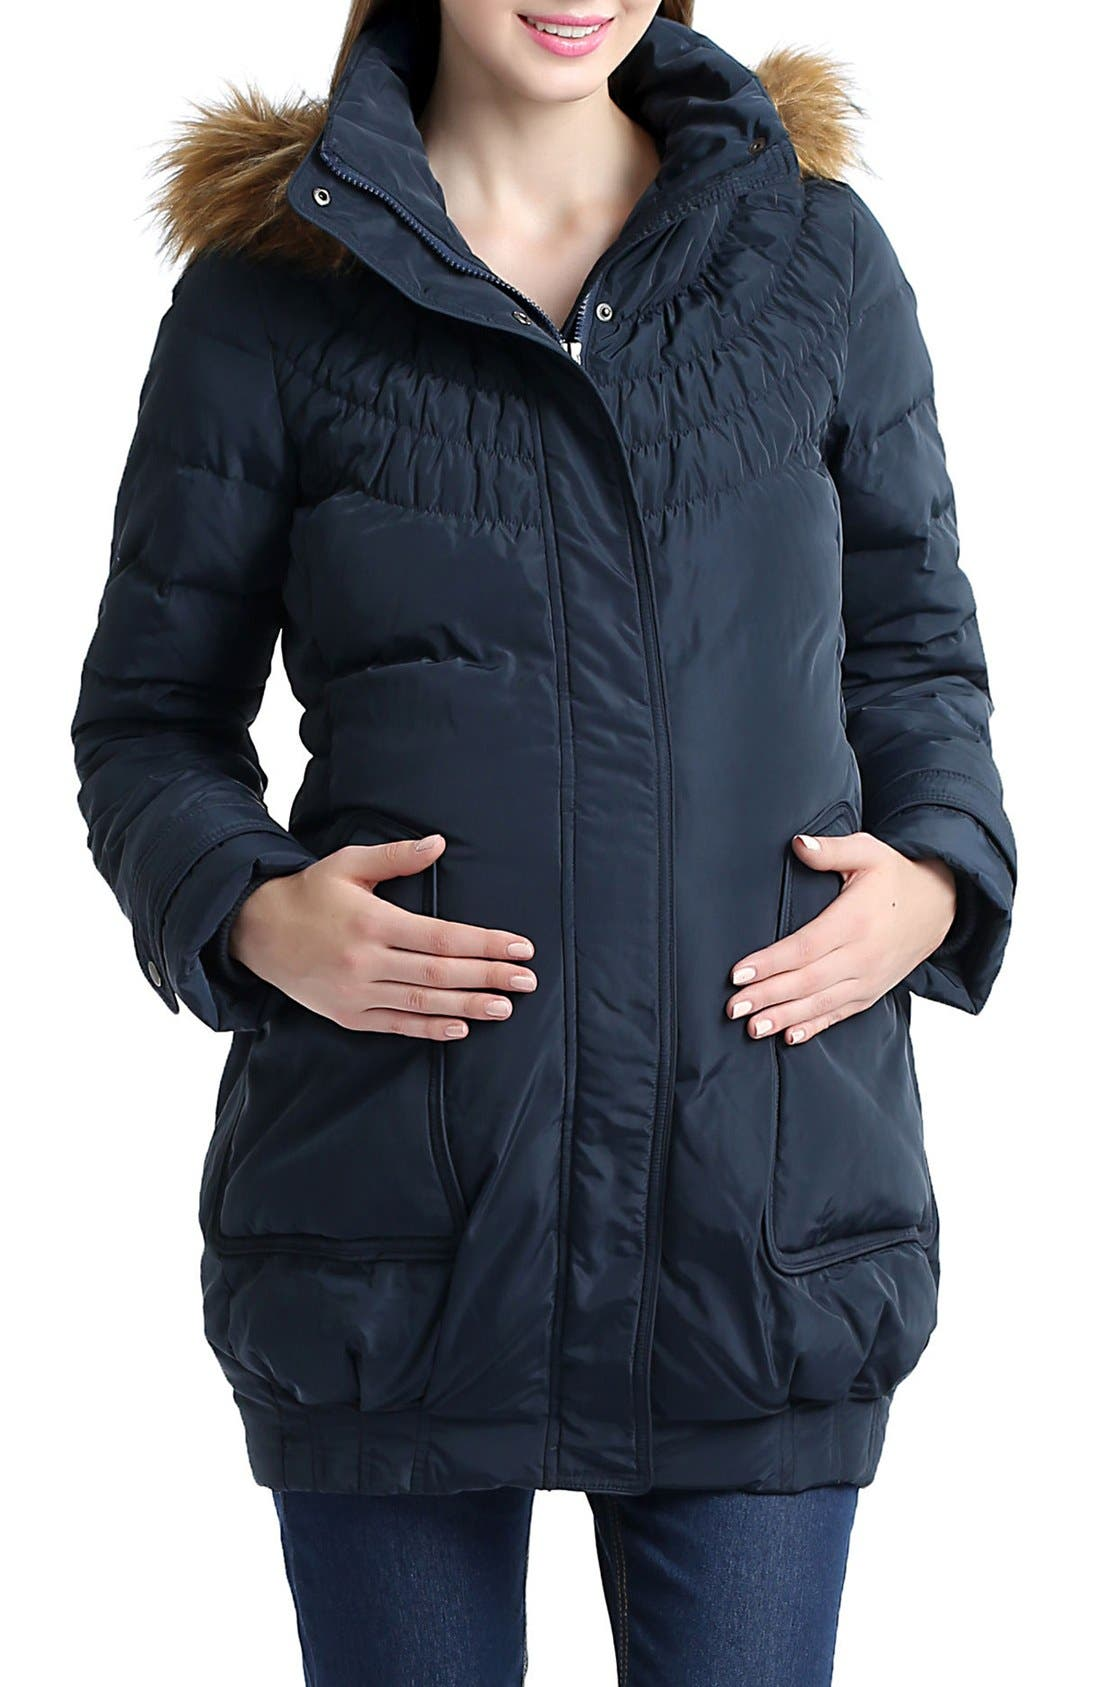 Arlo Water Resistant Down Maternity Parka With Baby Carrier Cover Inset